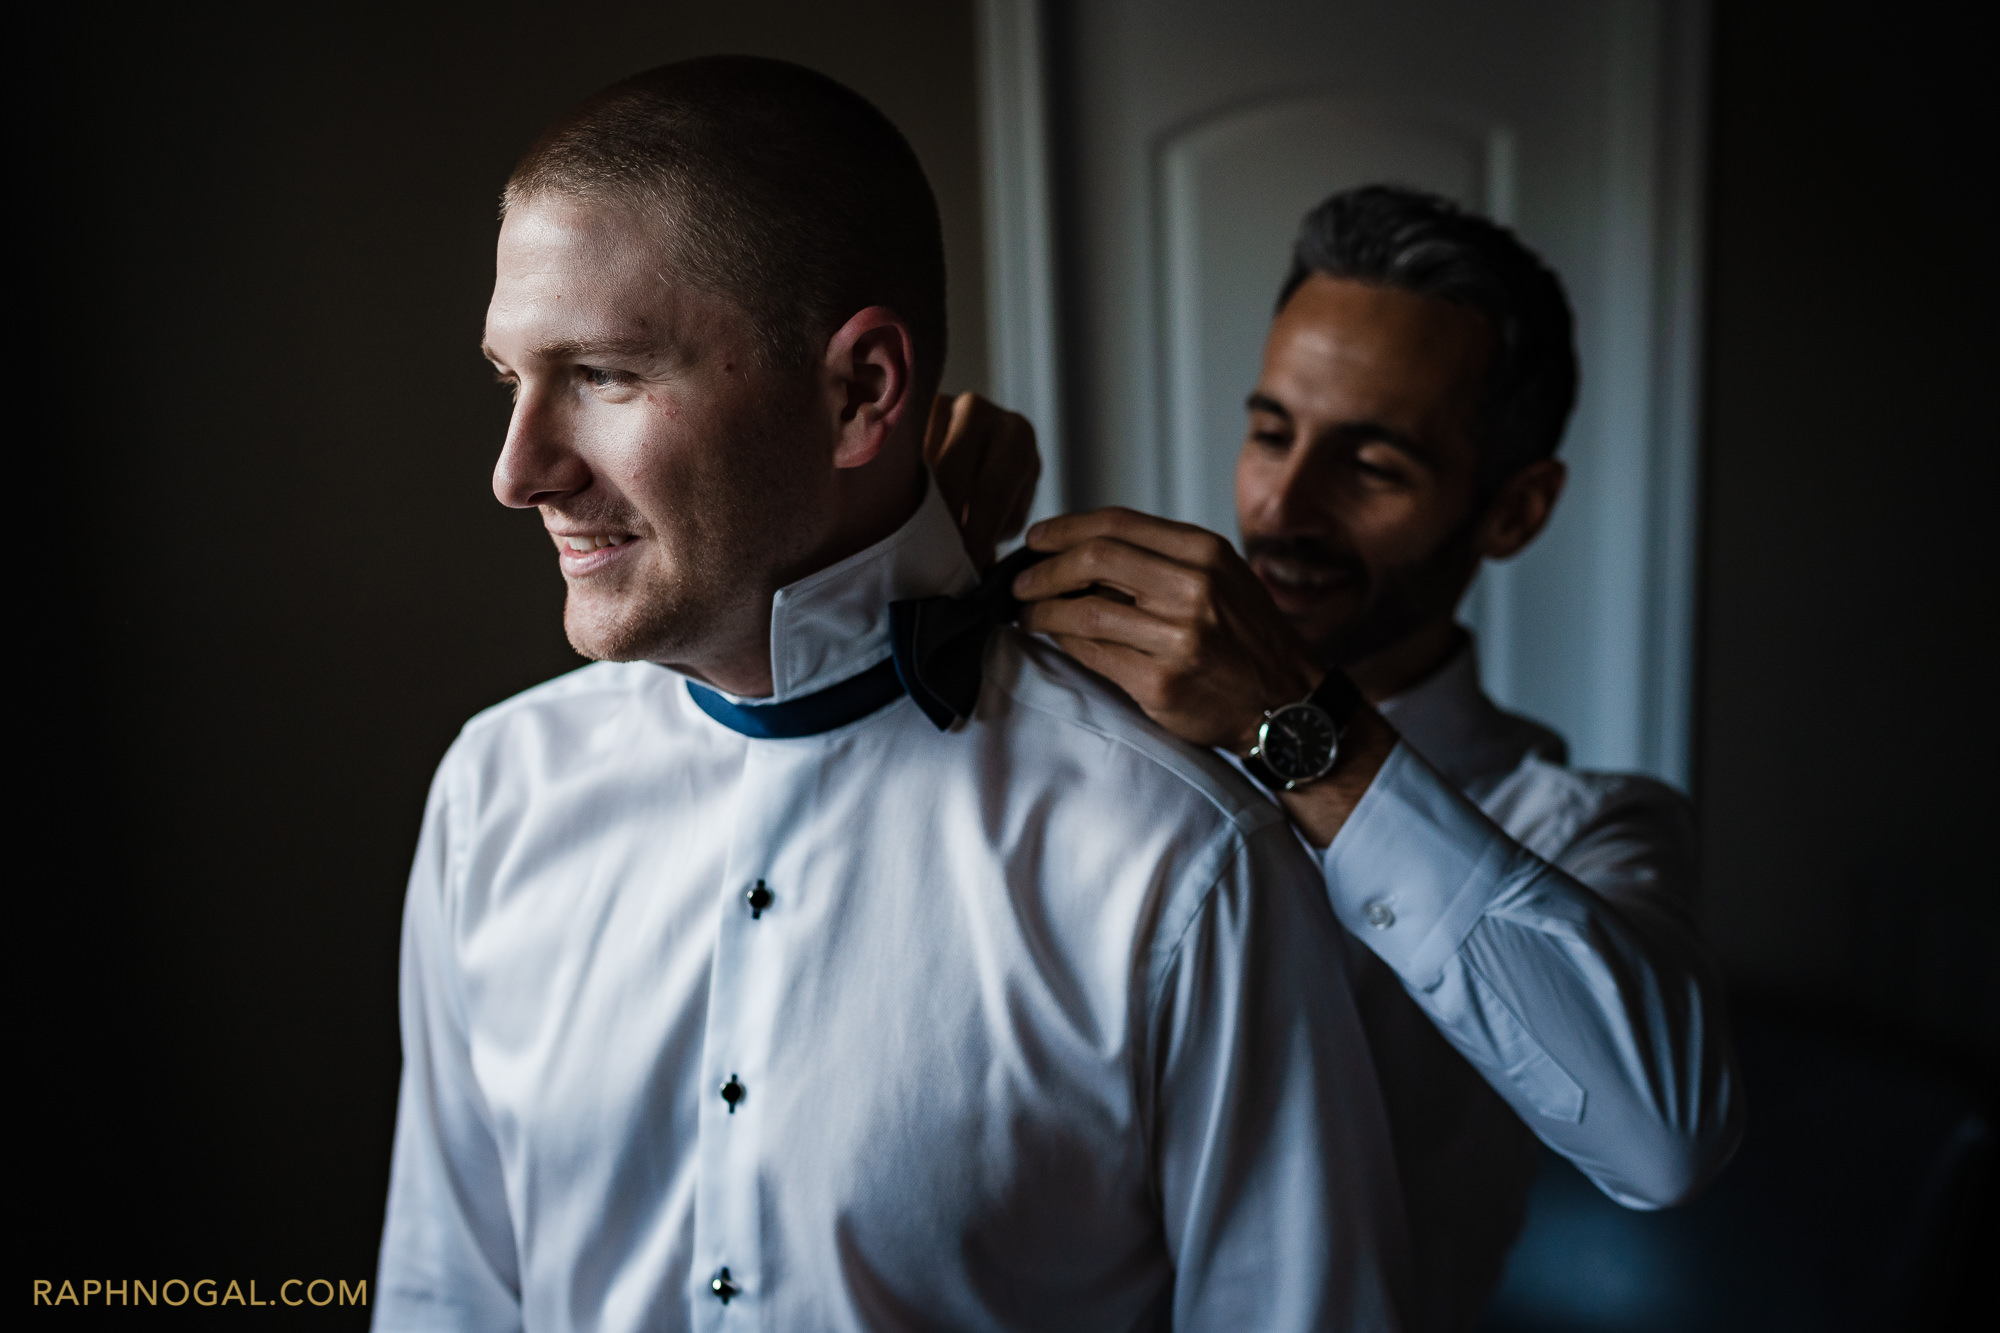 groom getting bow tie put on by best man